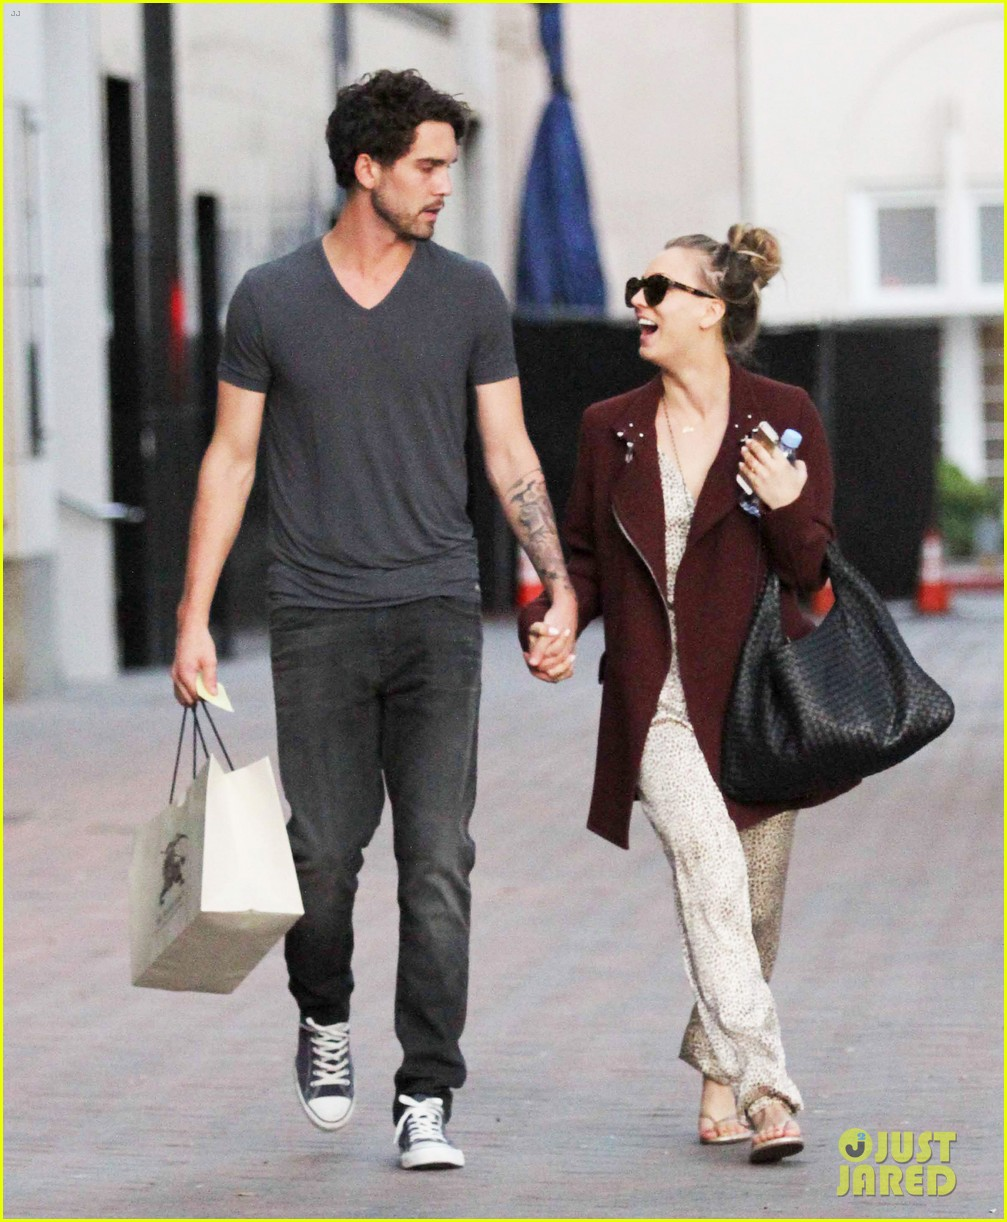 kaley cuoco steps out with ryan sweeting after the pcas 053026993